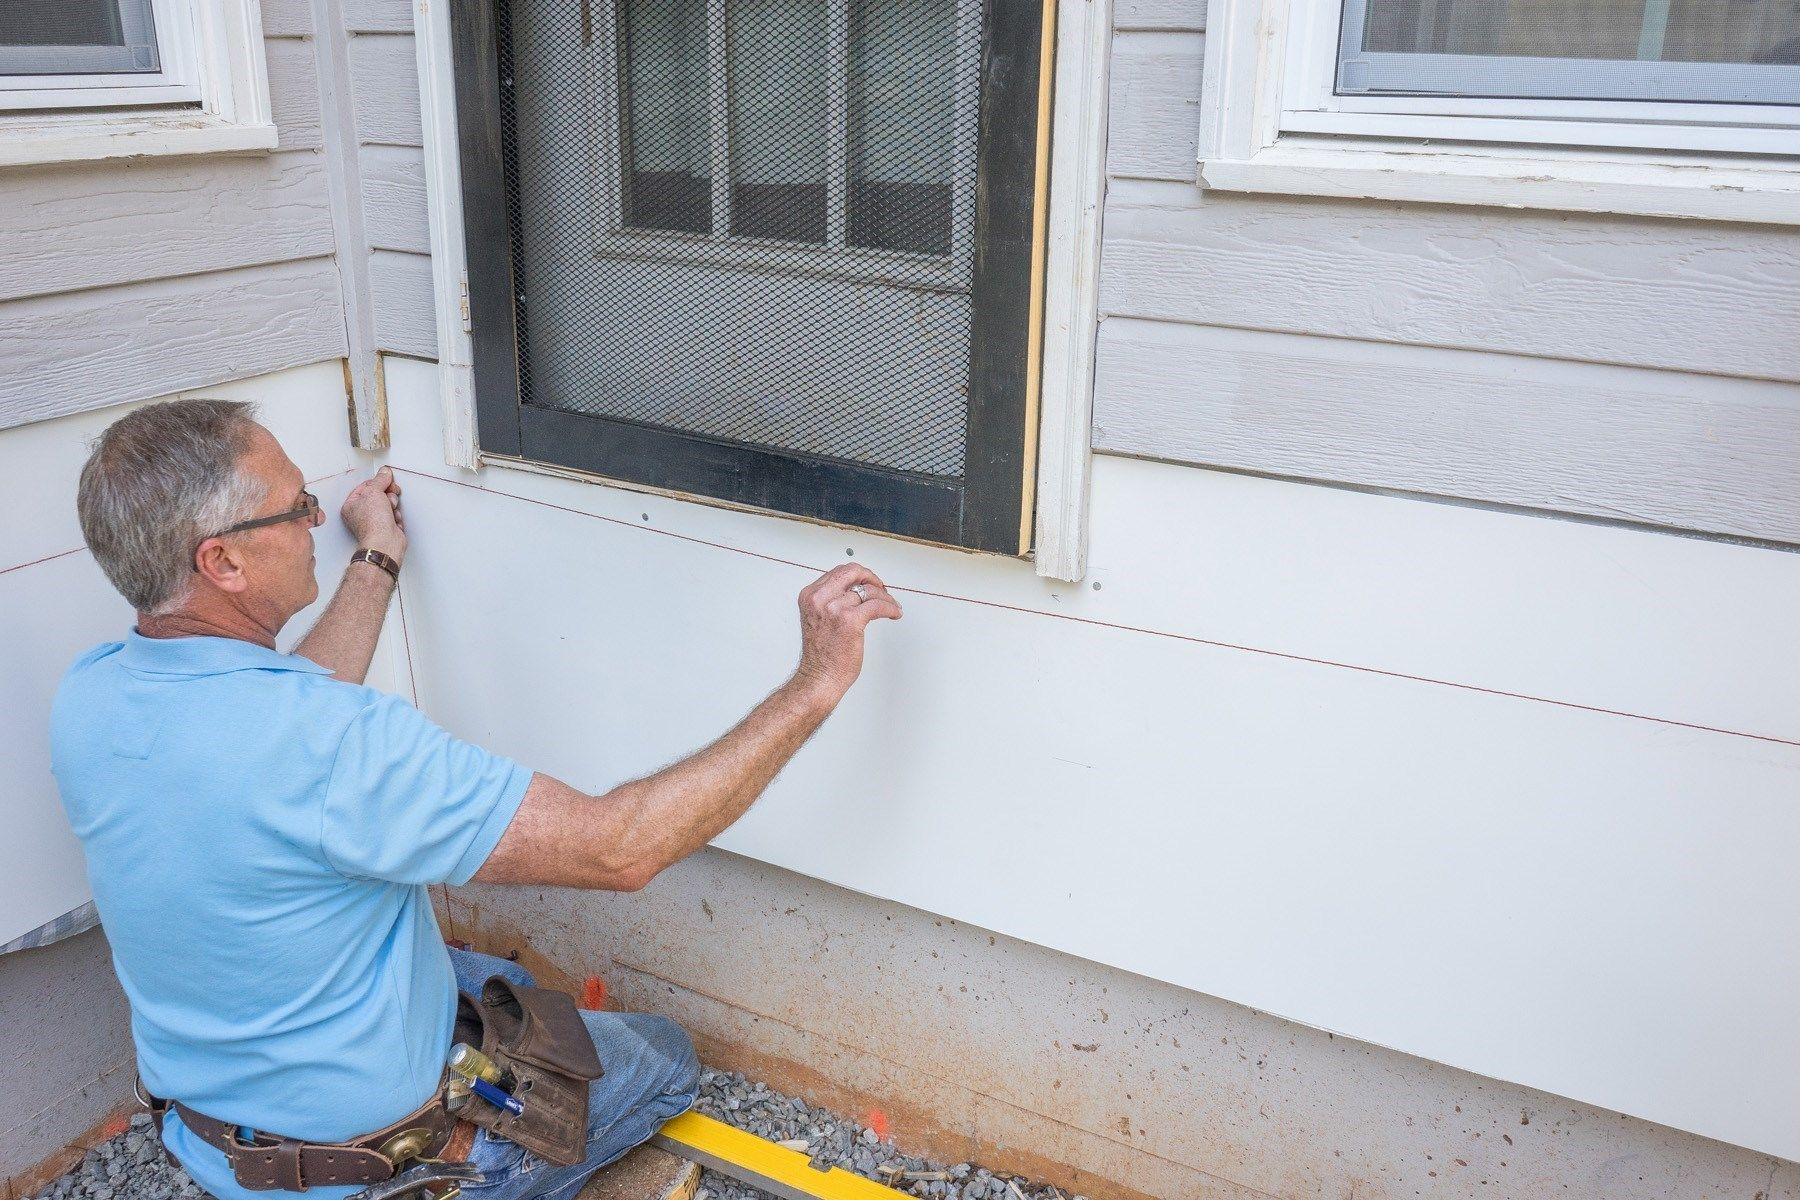 Attaching deck to house with siding - Snap A Chalk Line